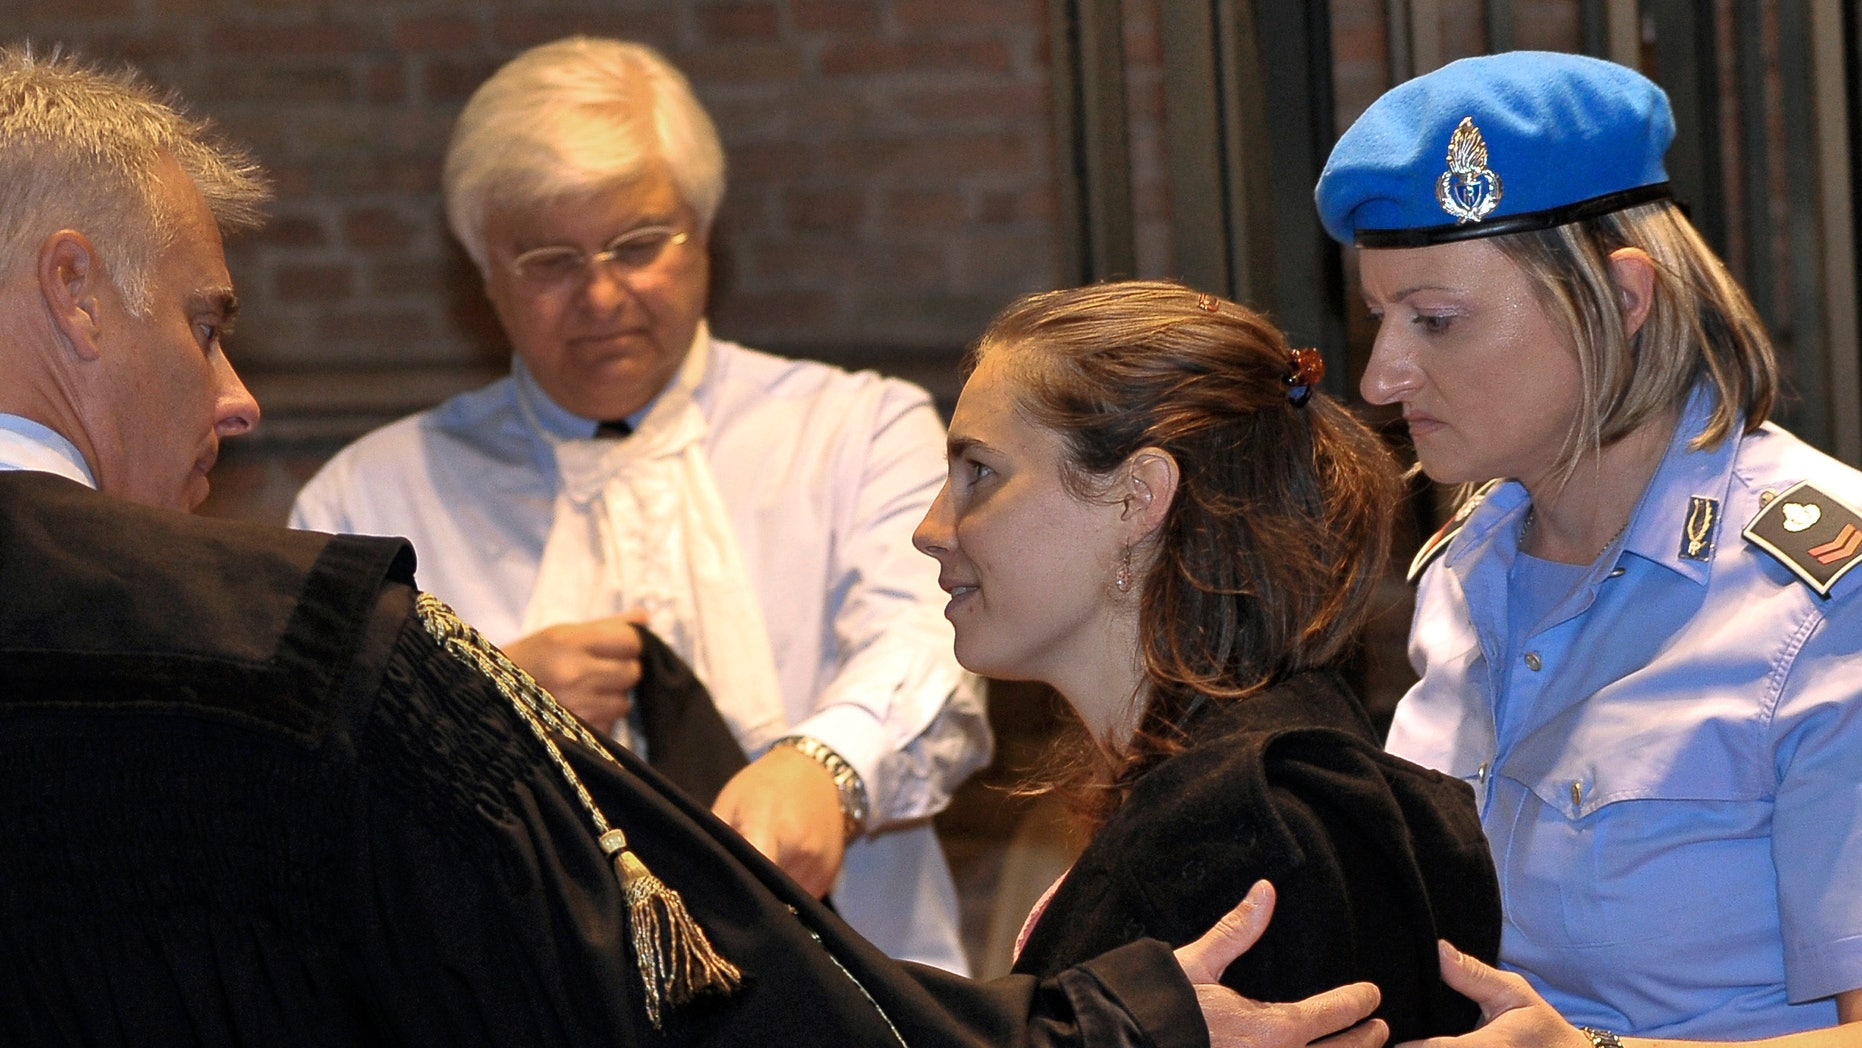 September 27: Amanda Knox, the american student convicted of killing her British roomate, arrives at the Perugia court in Italy.